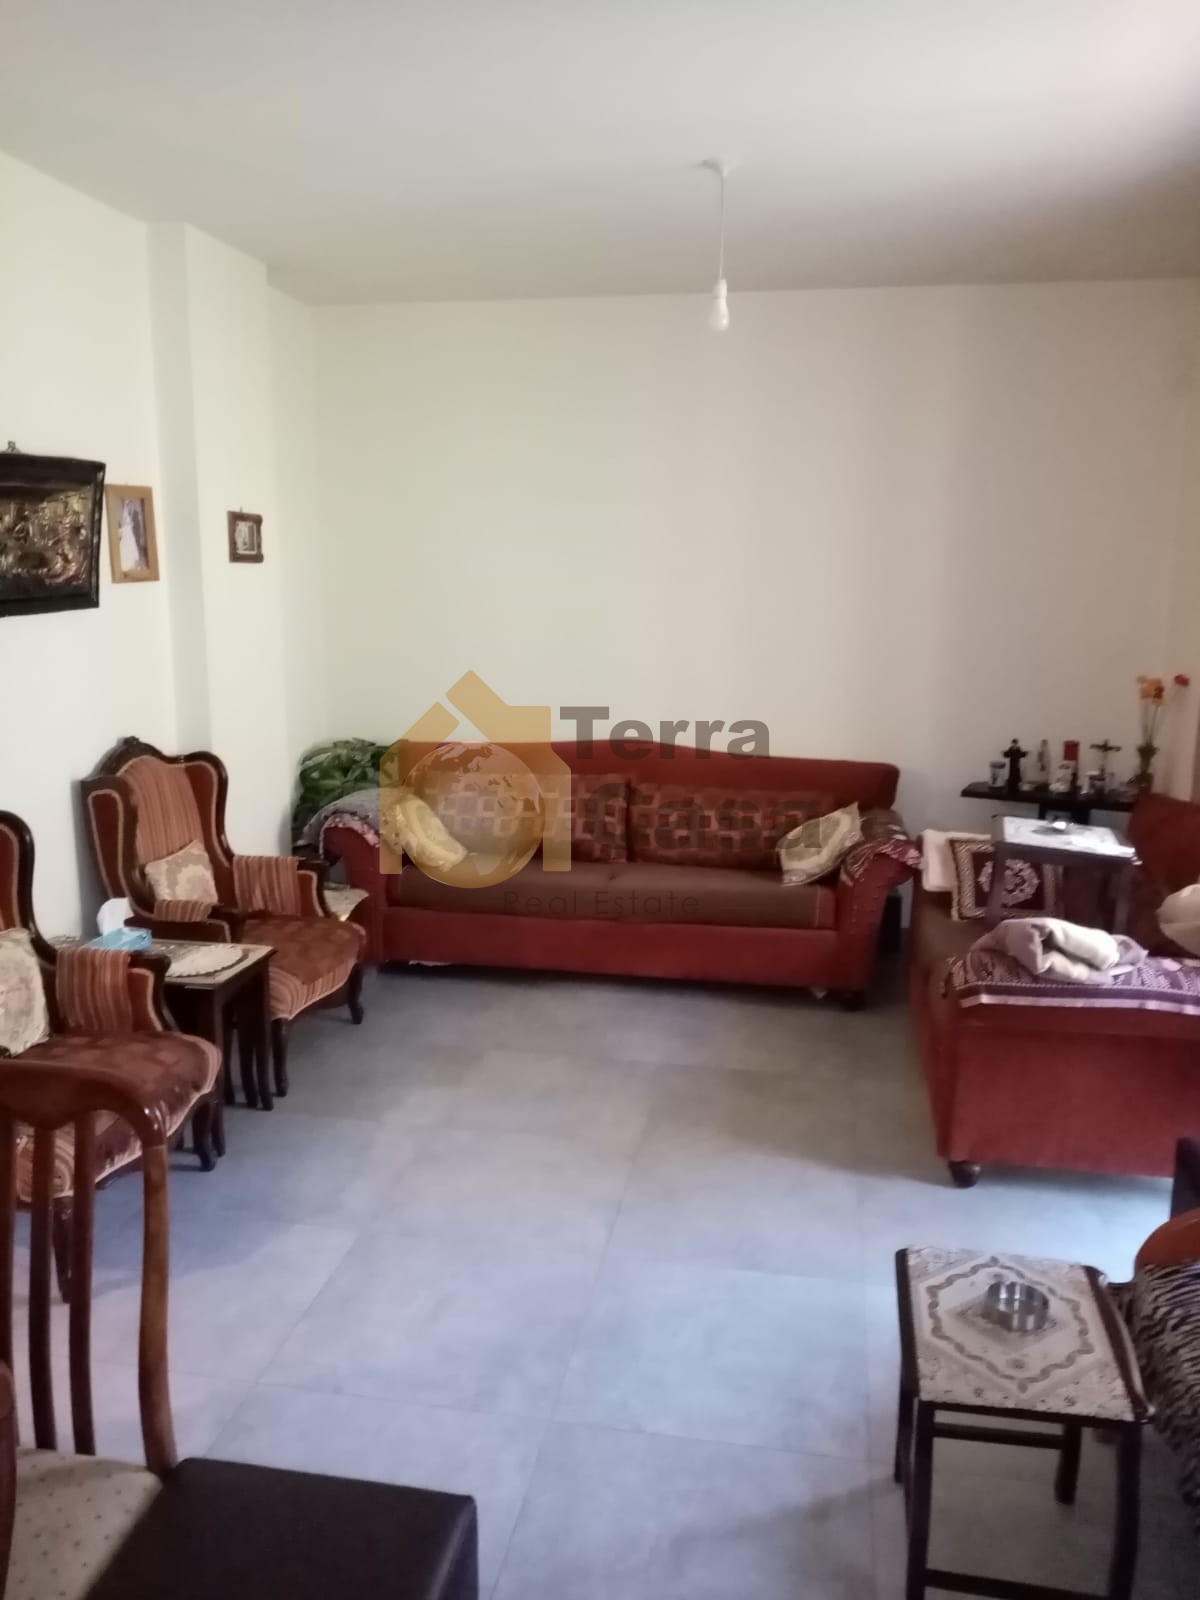 Apartment fully decorated for sale .